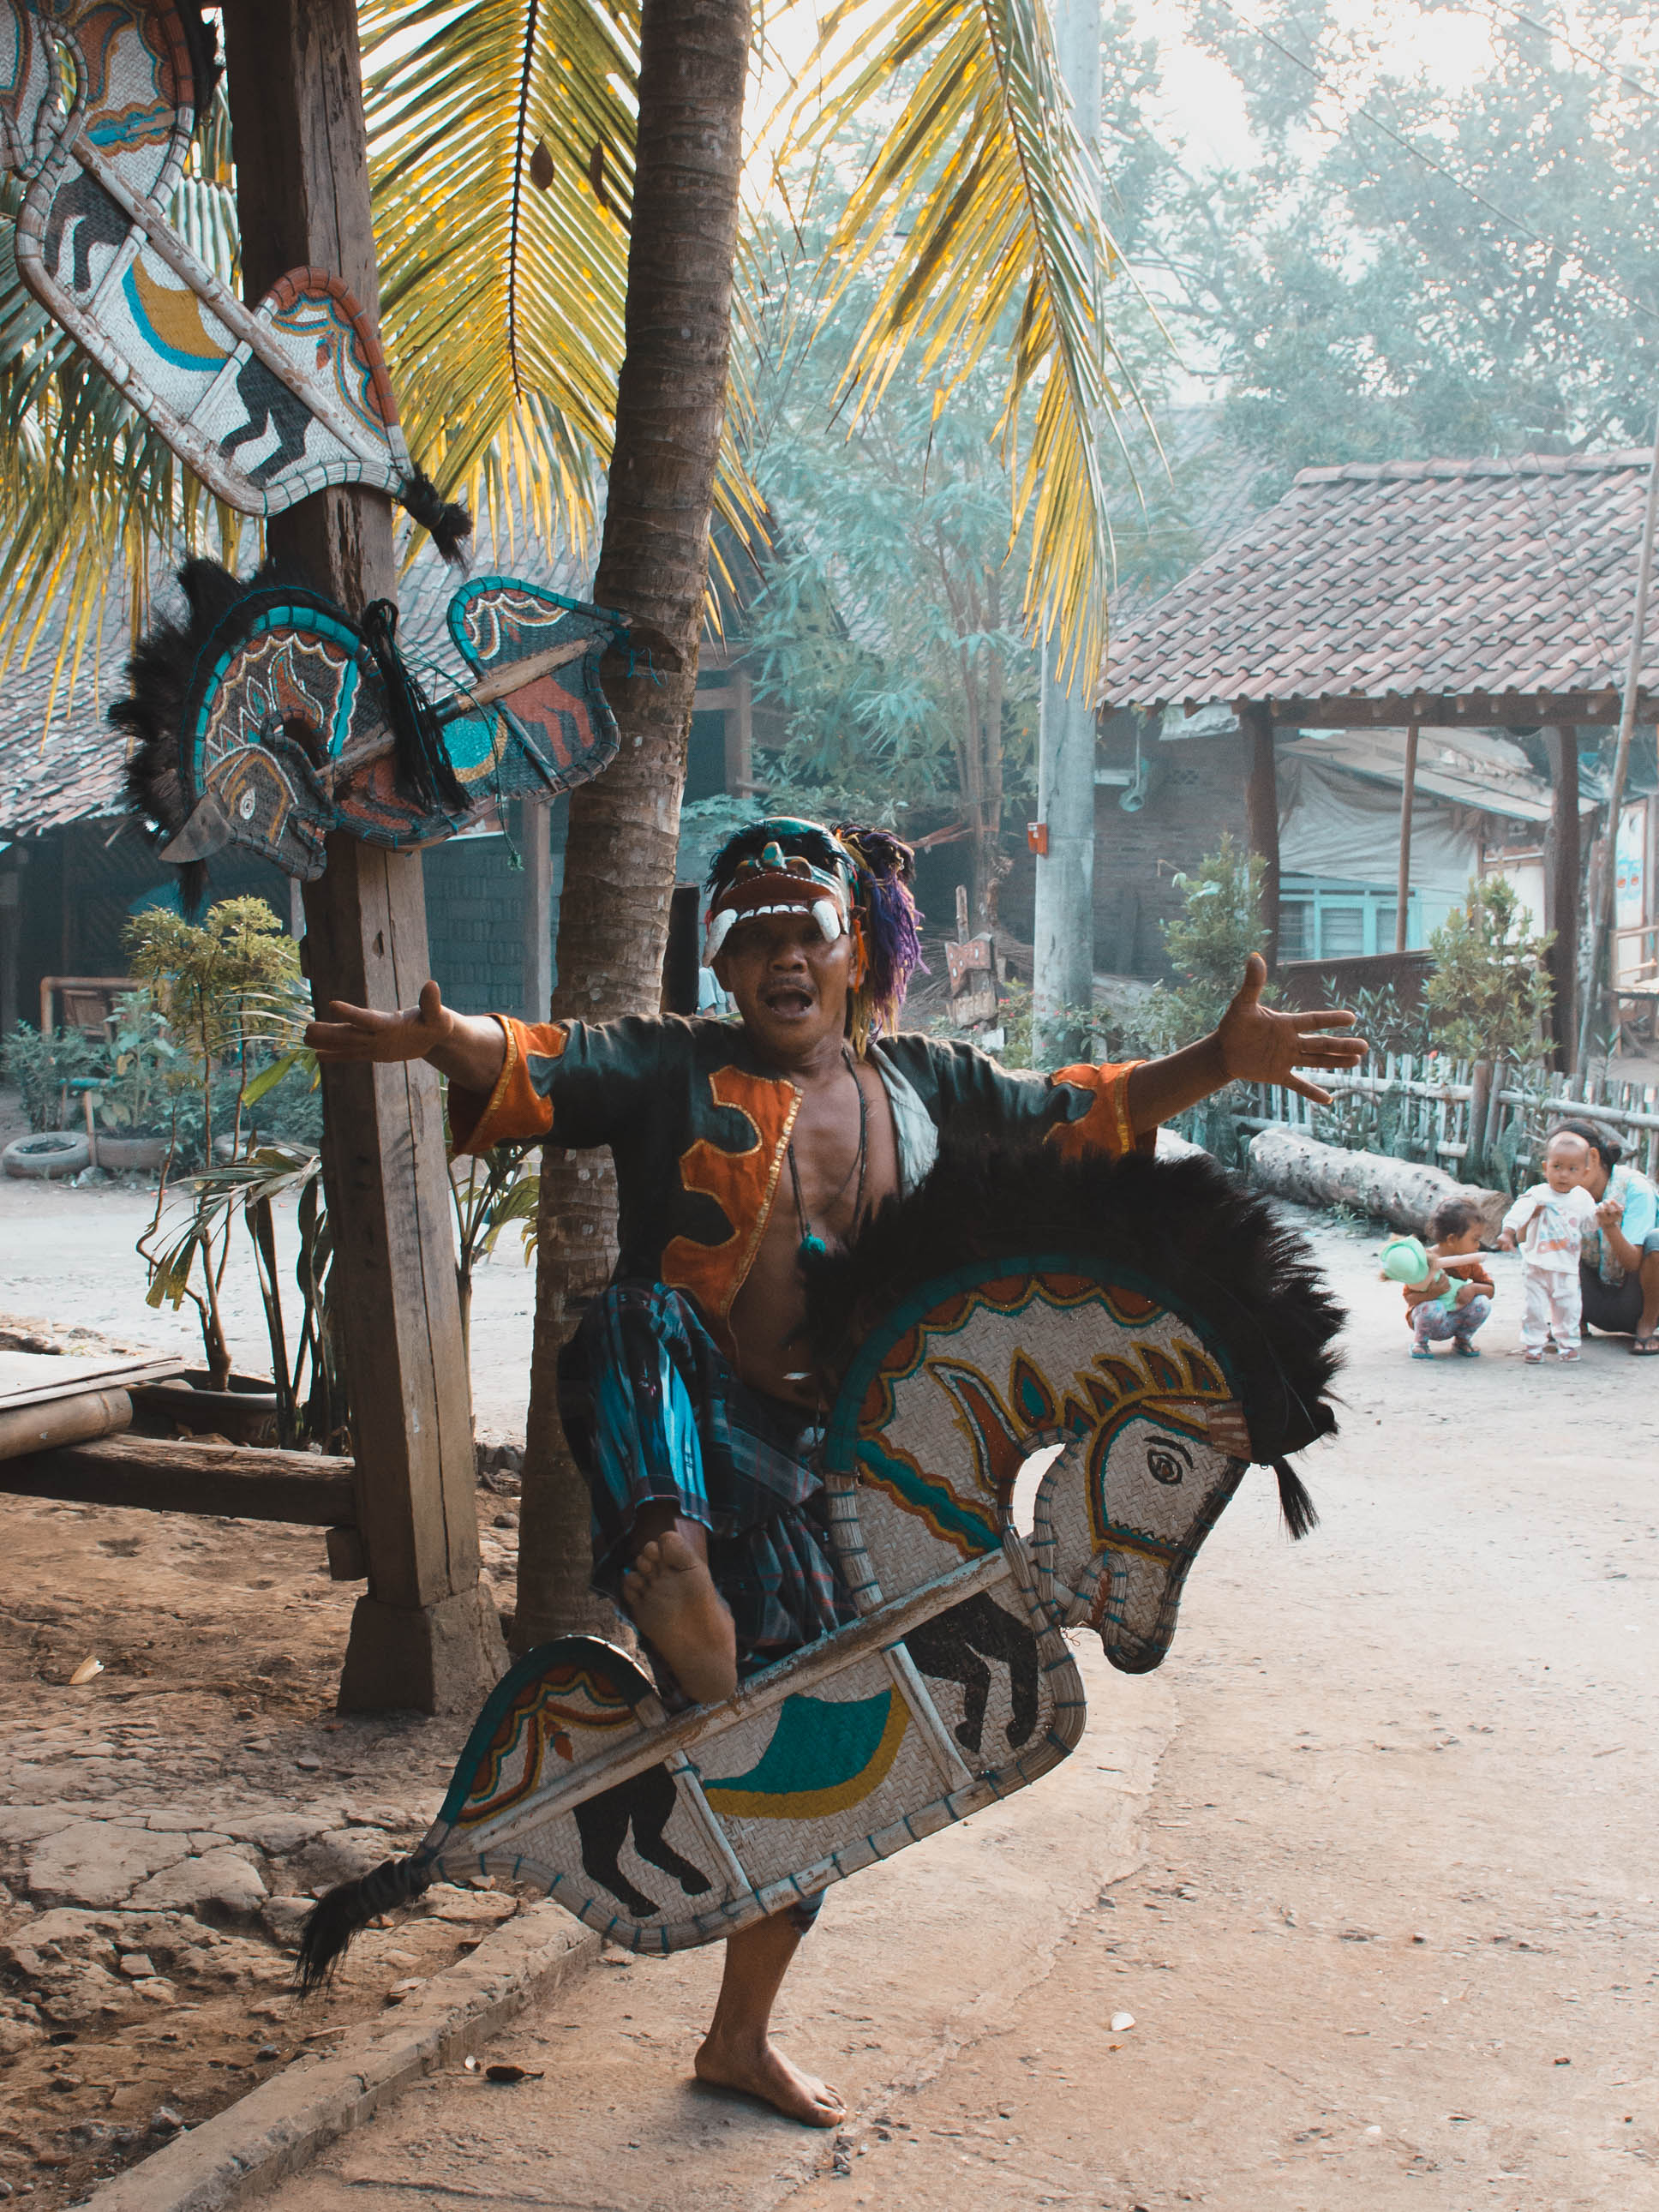 Local Indonesian man in traditional clothes near Borobudur temple